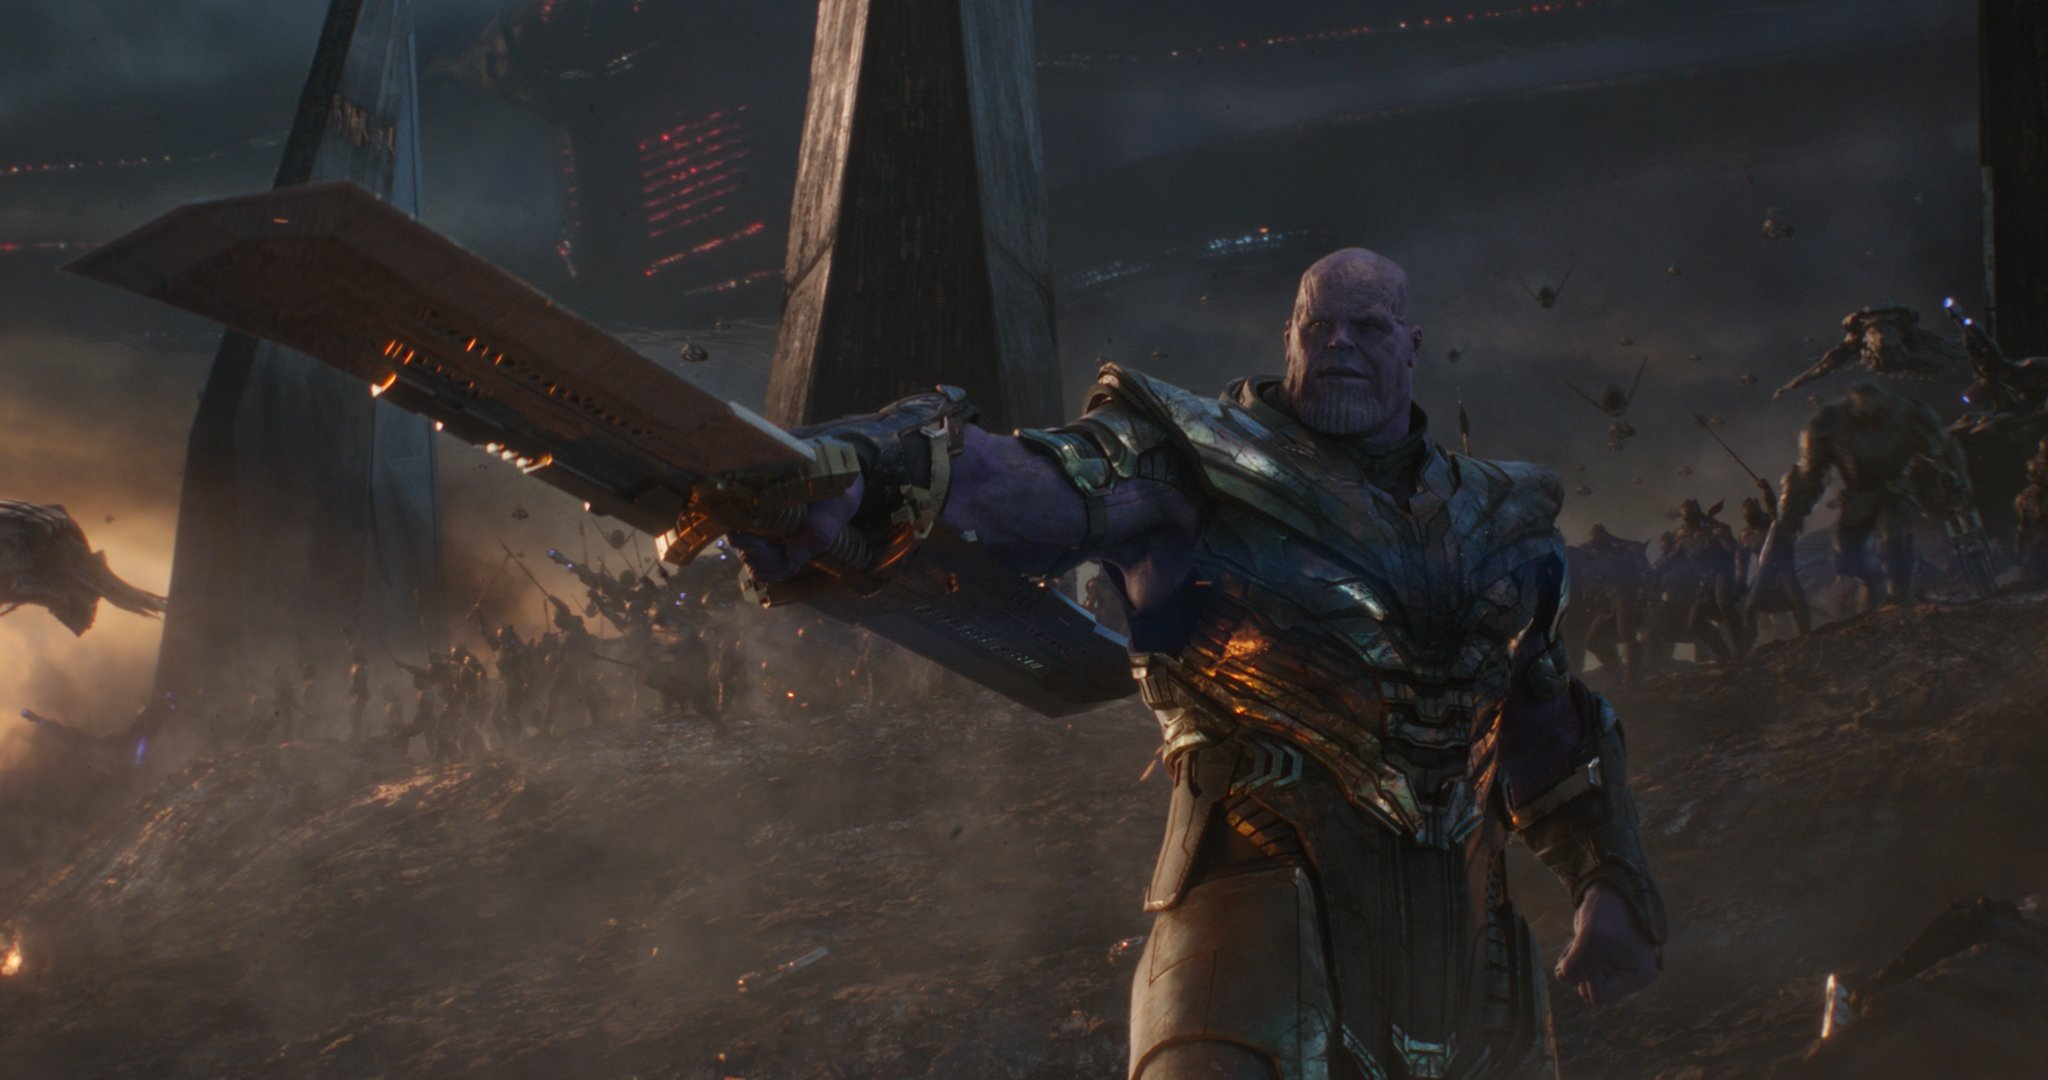 Photo du film Avengers: Endgame avec Thanos en train de lancer son armée